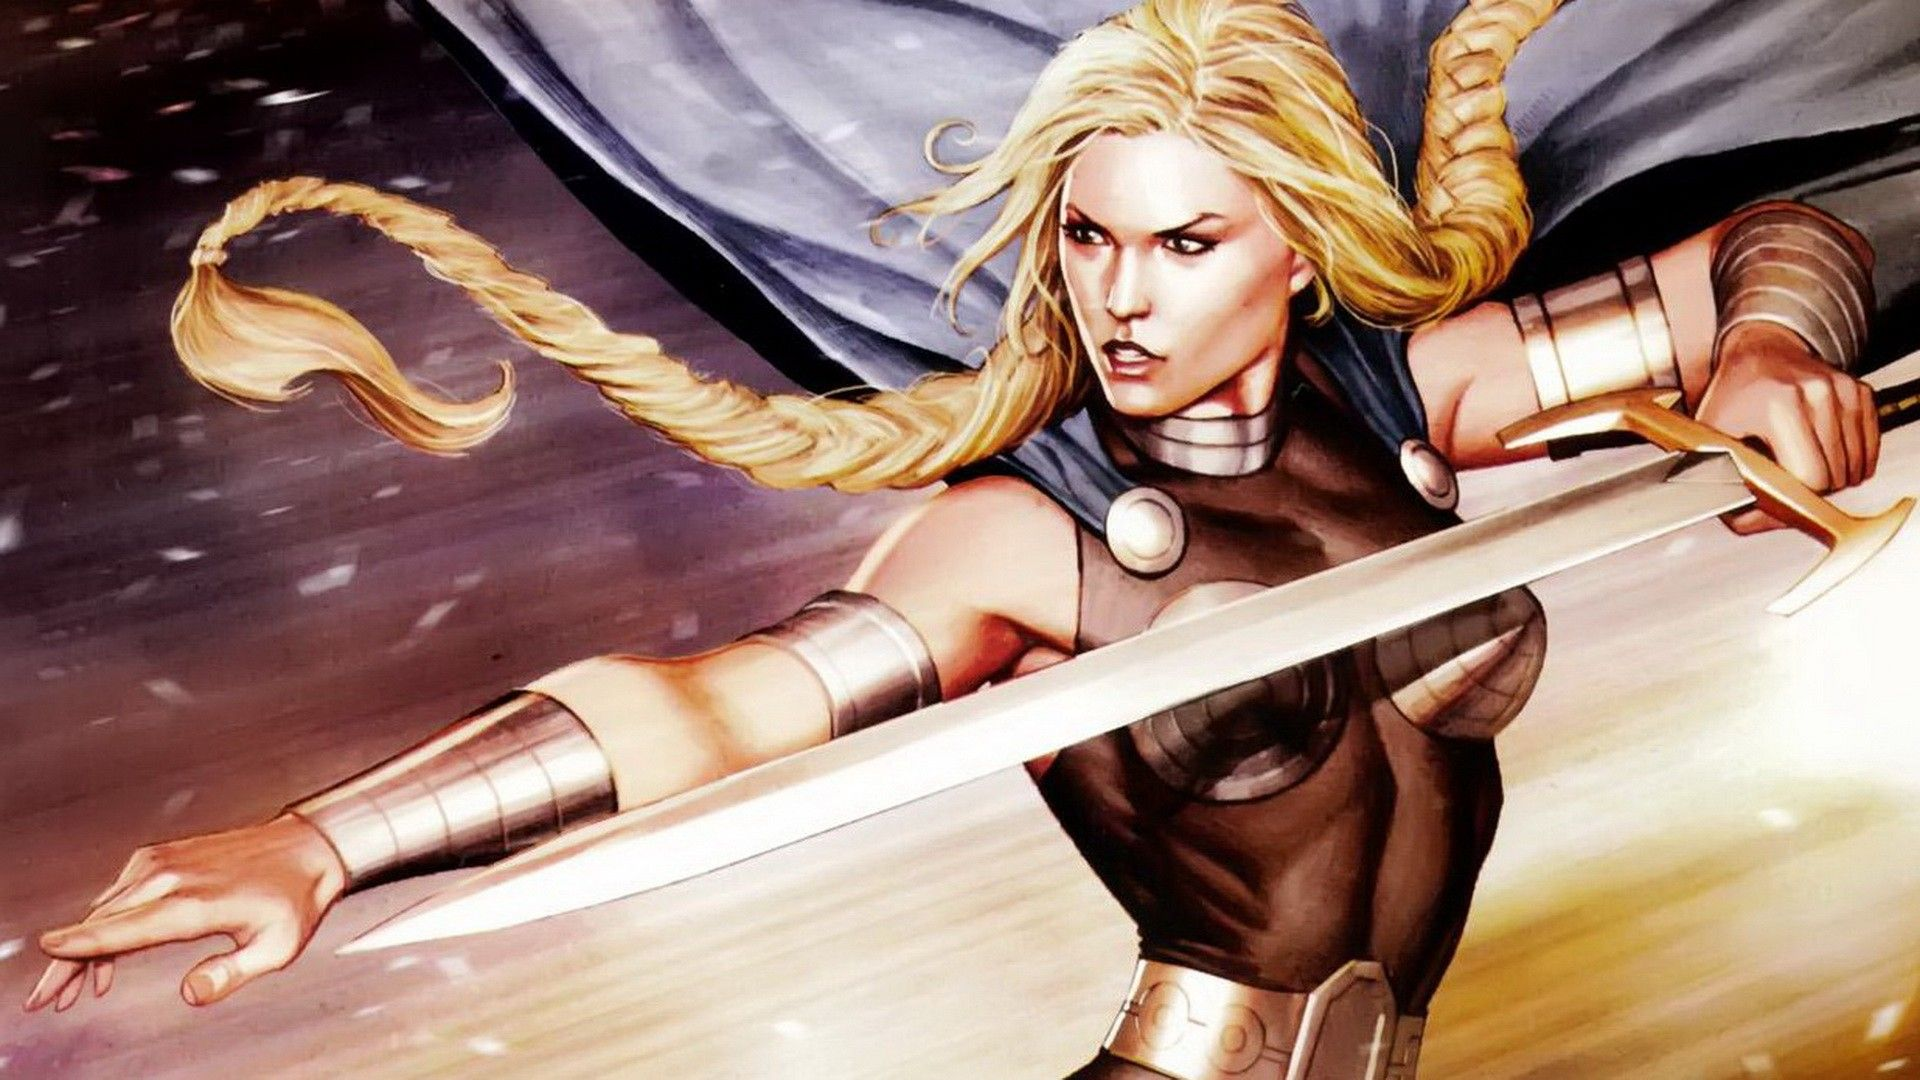 Good Wallpaper Marvel Valkyrie - af7a8721fc2205d0adc2cc115fee6eb2  You Should Have_628957.jpg